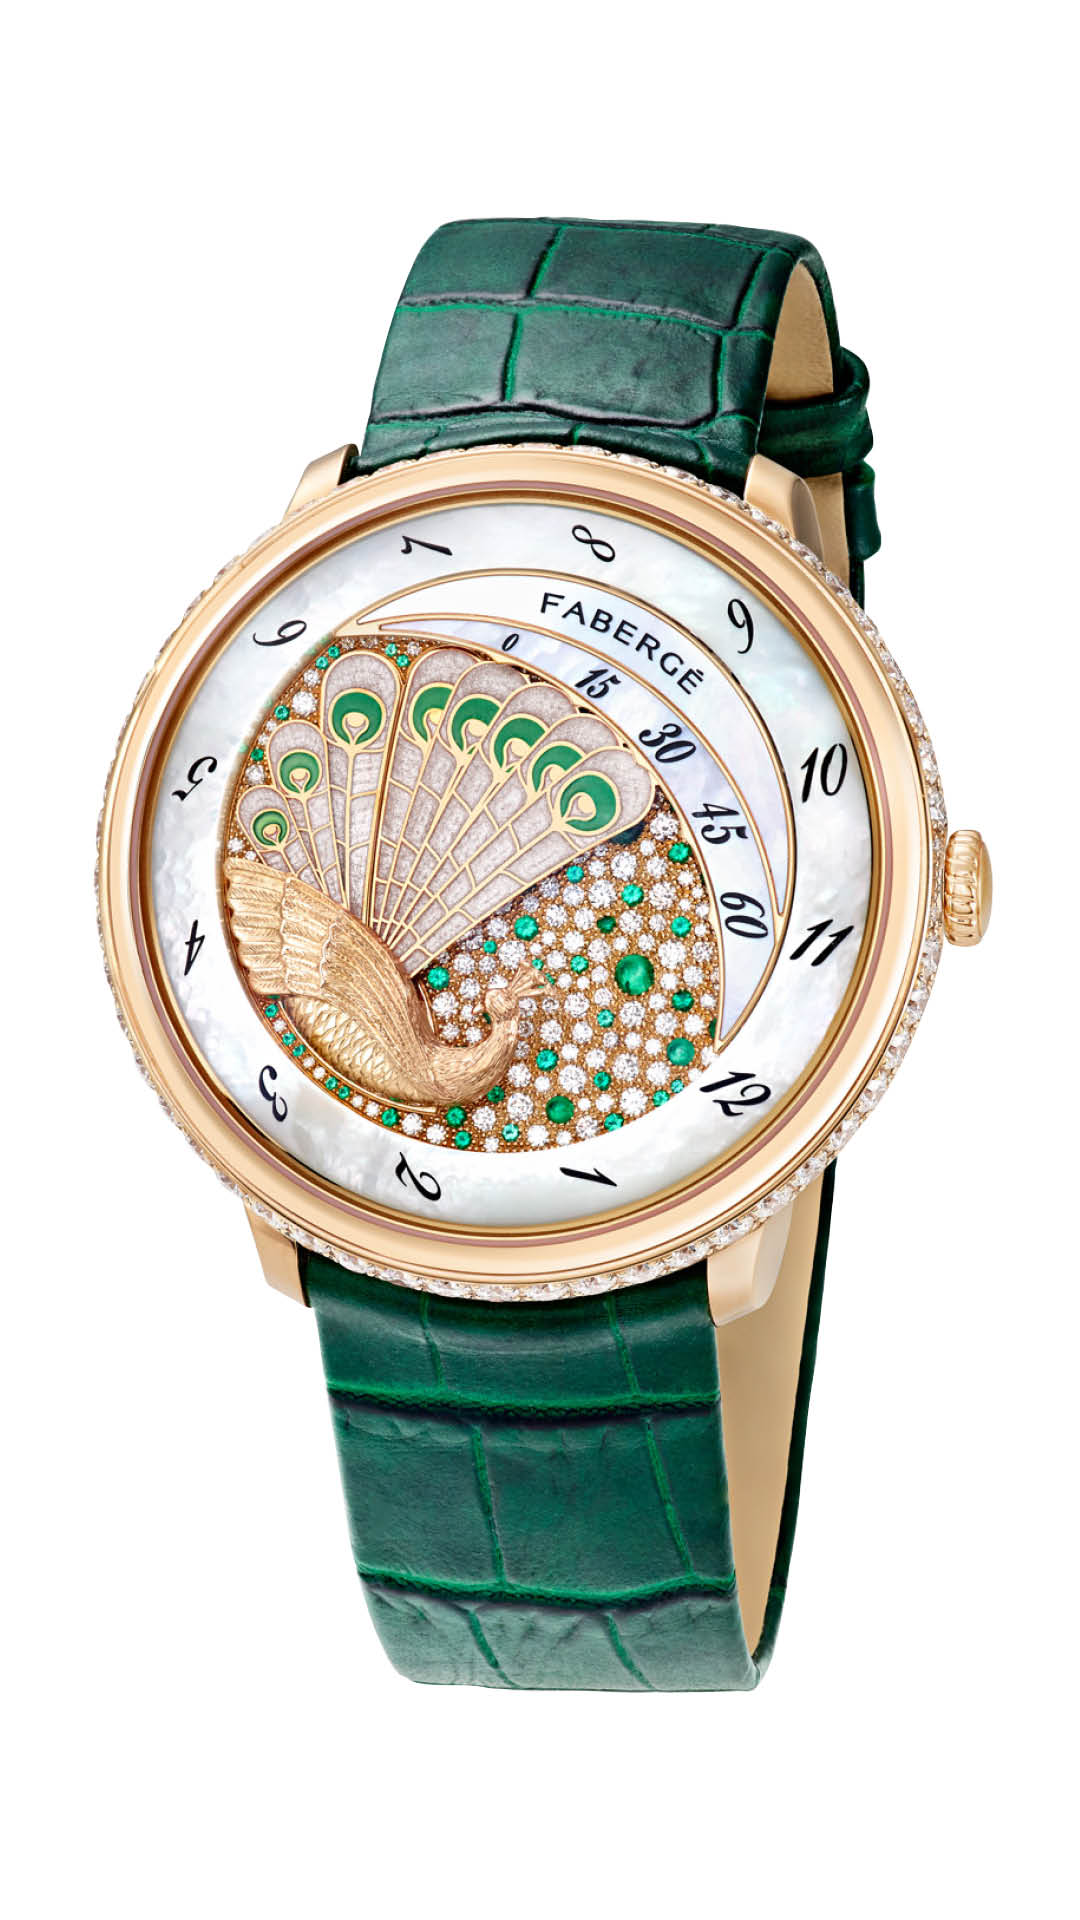 Faberge Lady Compliquee Watch Green